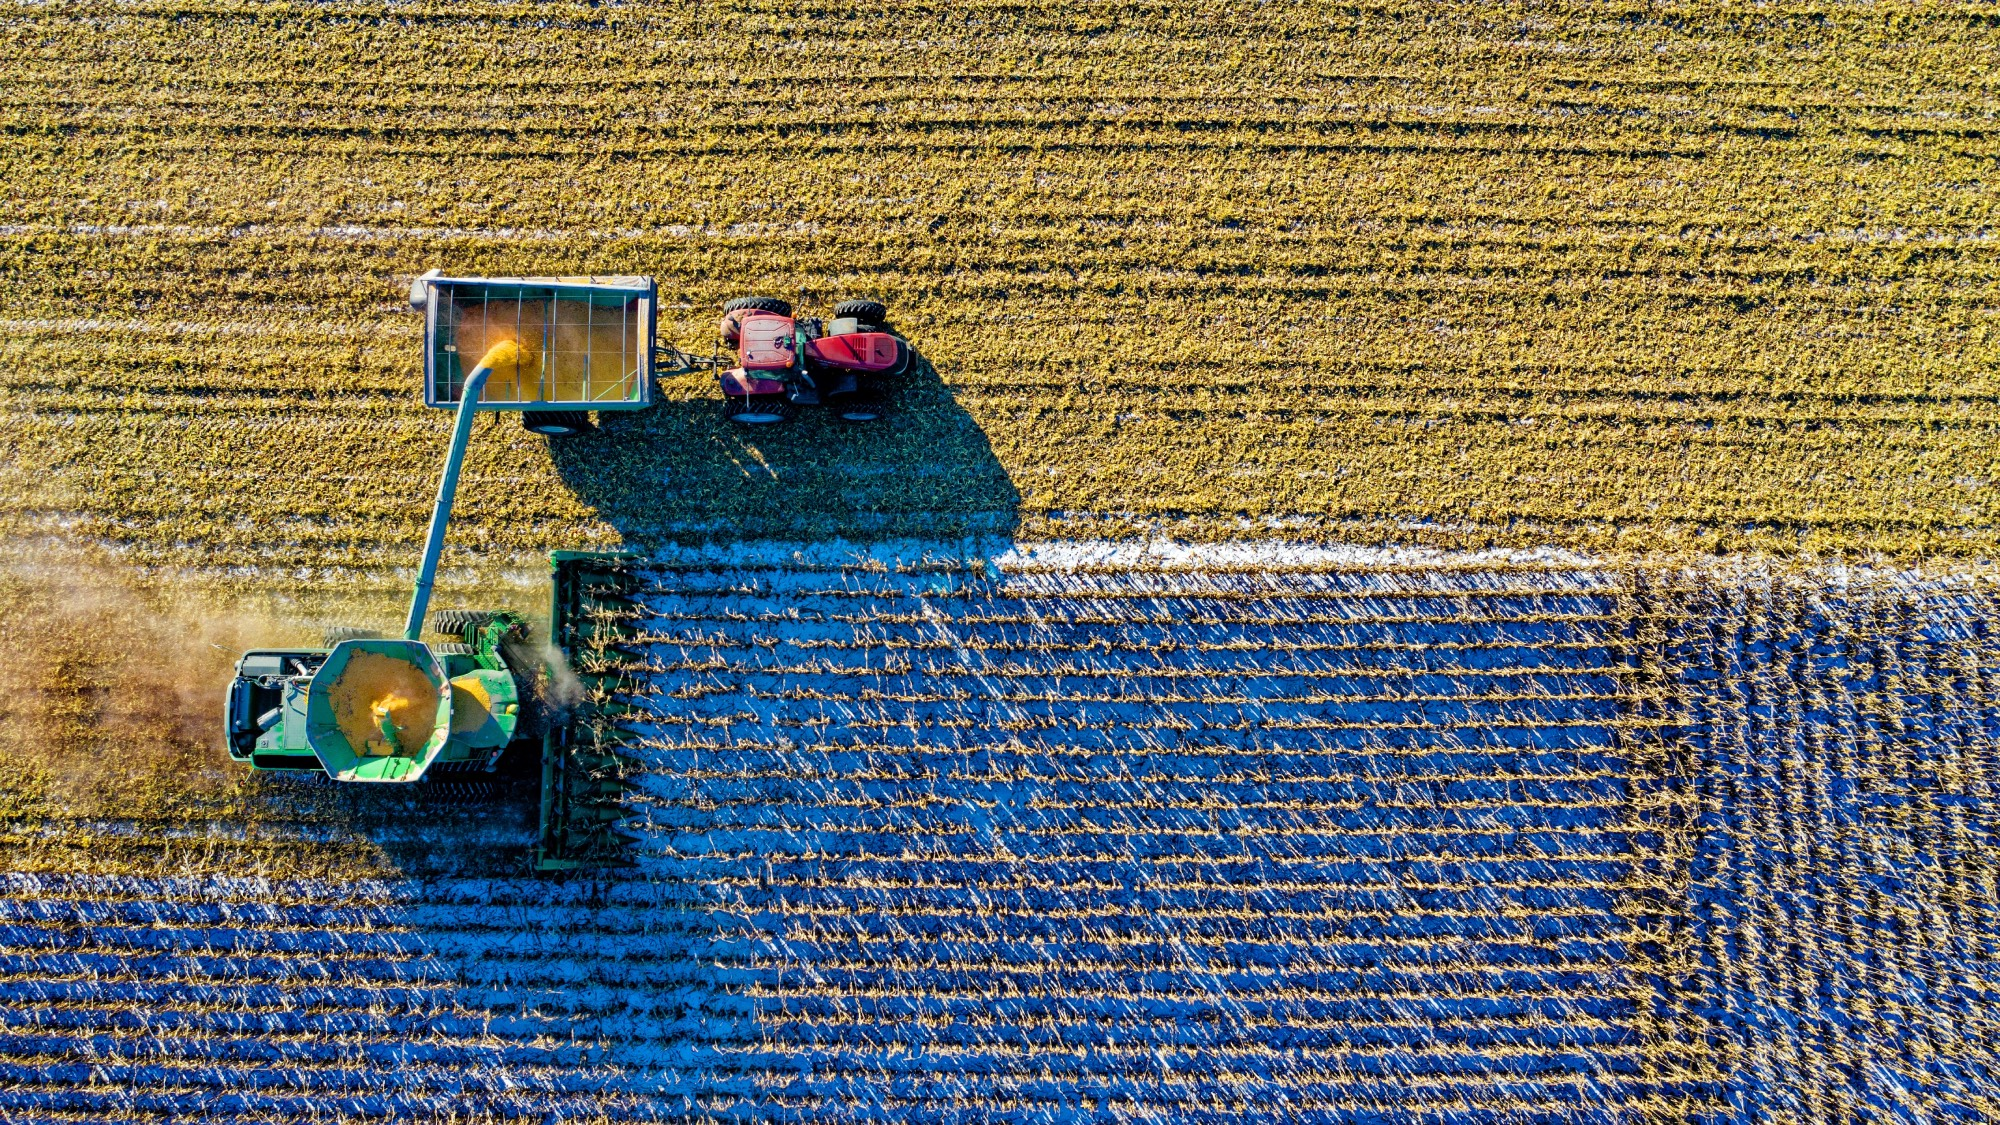 Tractors on a field from above